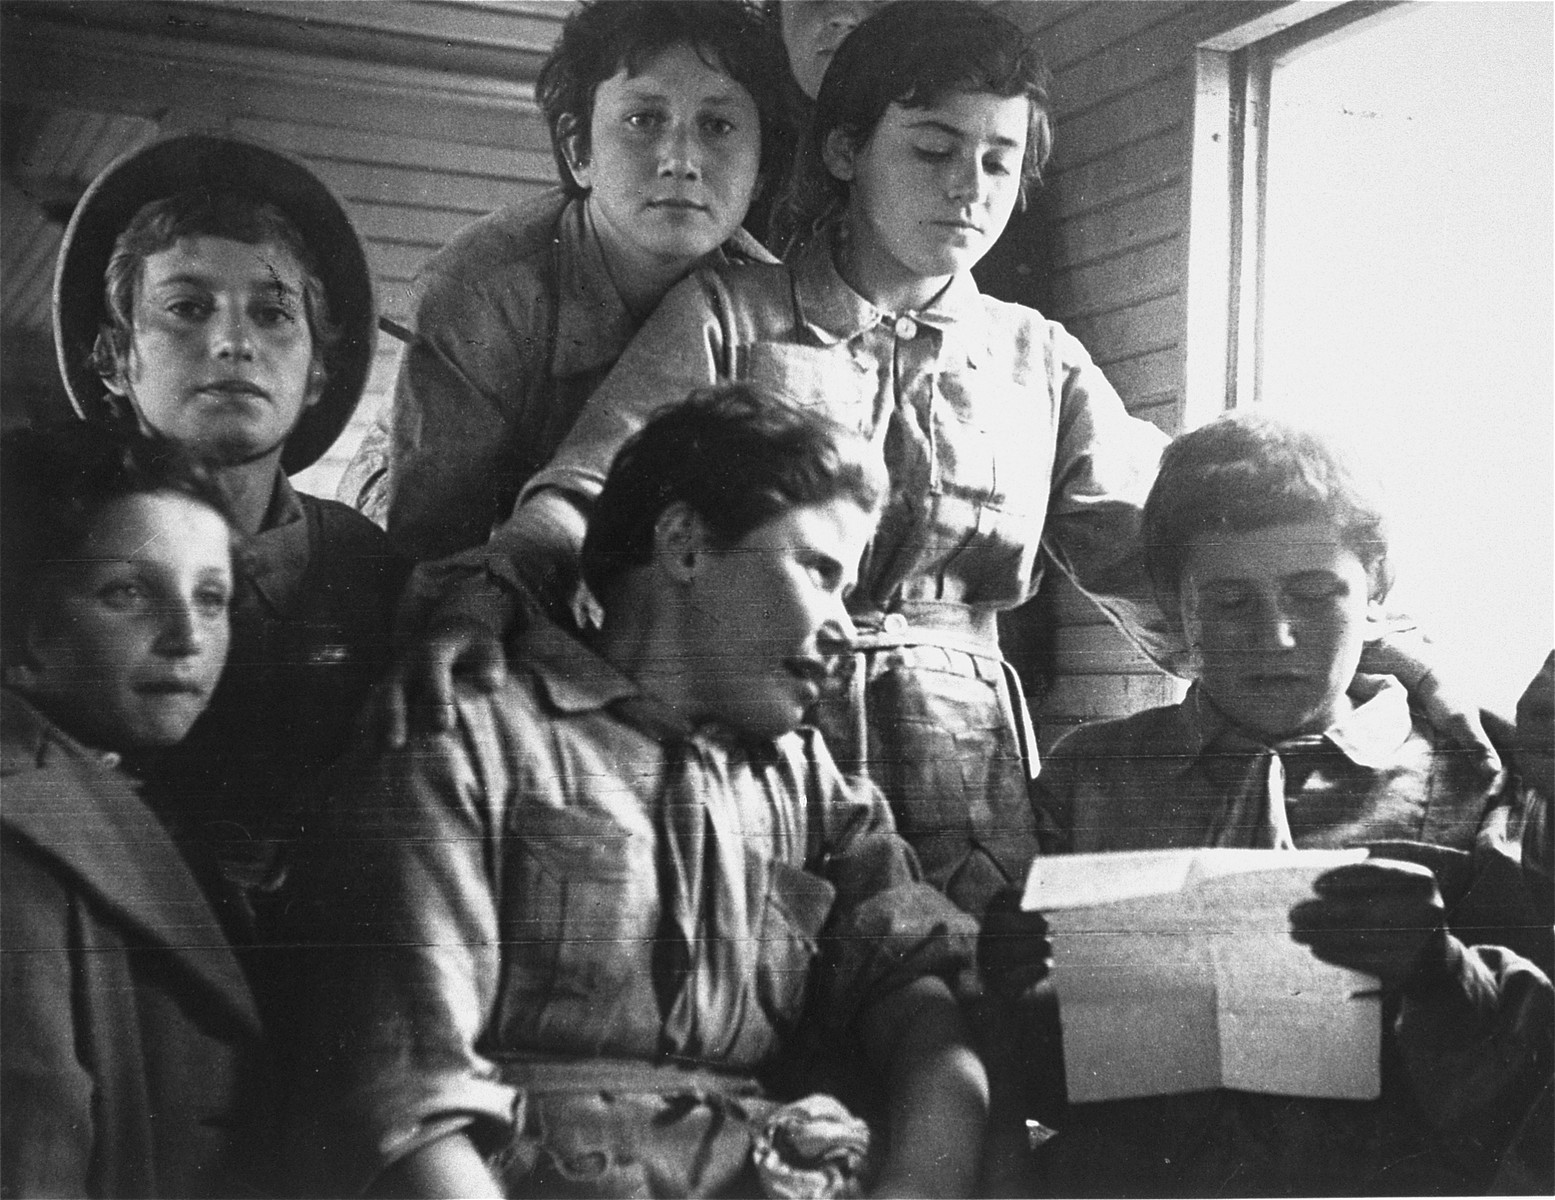 A group of Jewish refugees on the Teheran children's transport travel by train to Palestine.